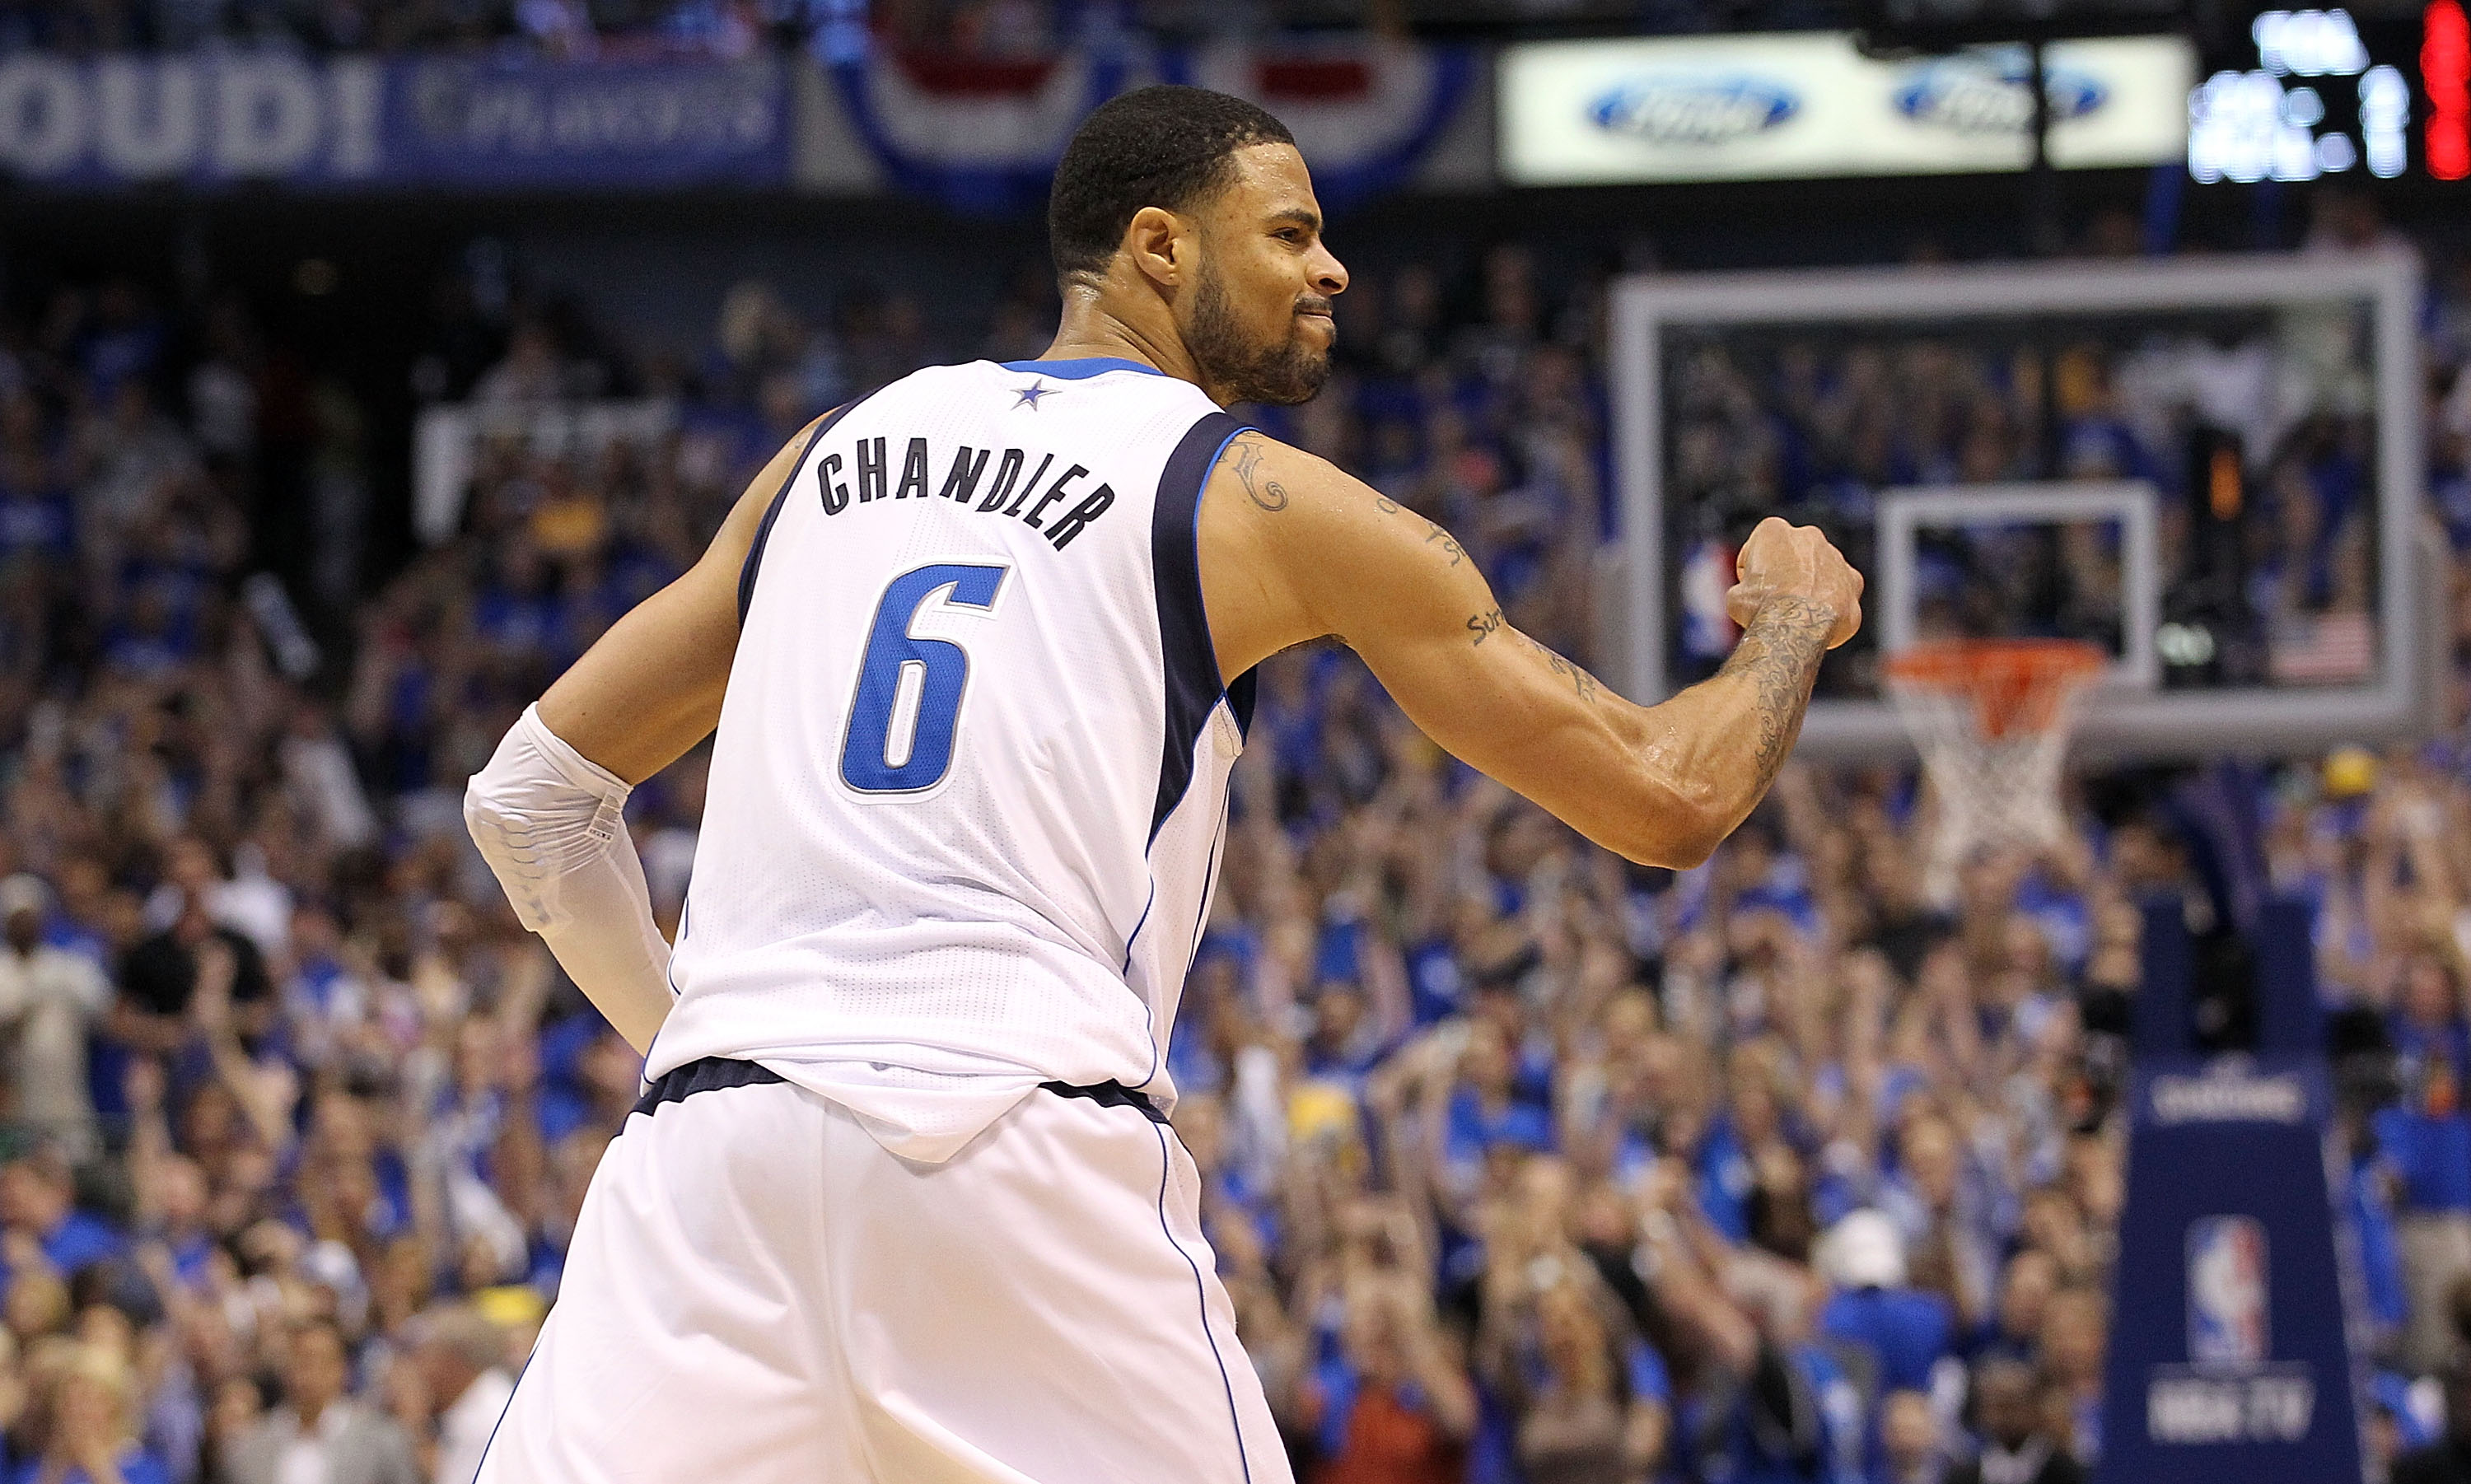 DALLAS, TX - MAY 06:  Center Tyson Chandler #6 of the Dallas Mavericks reacts after a 98-92 win against the Los Angeles Lakers in Game Three of the Western Conference Semifinals during the 2011 NBA Playoffs on May 6, 2011 at American Airlines Center in Da